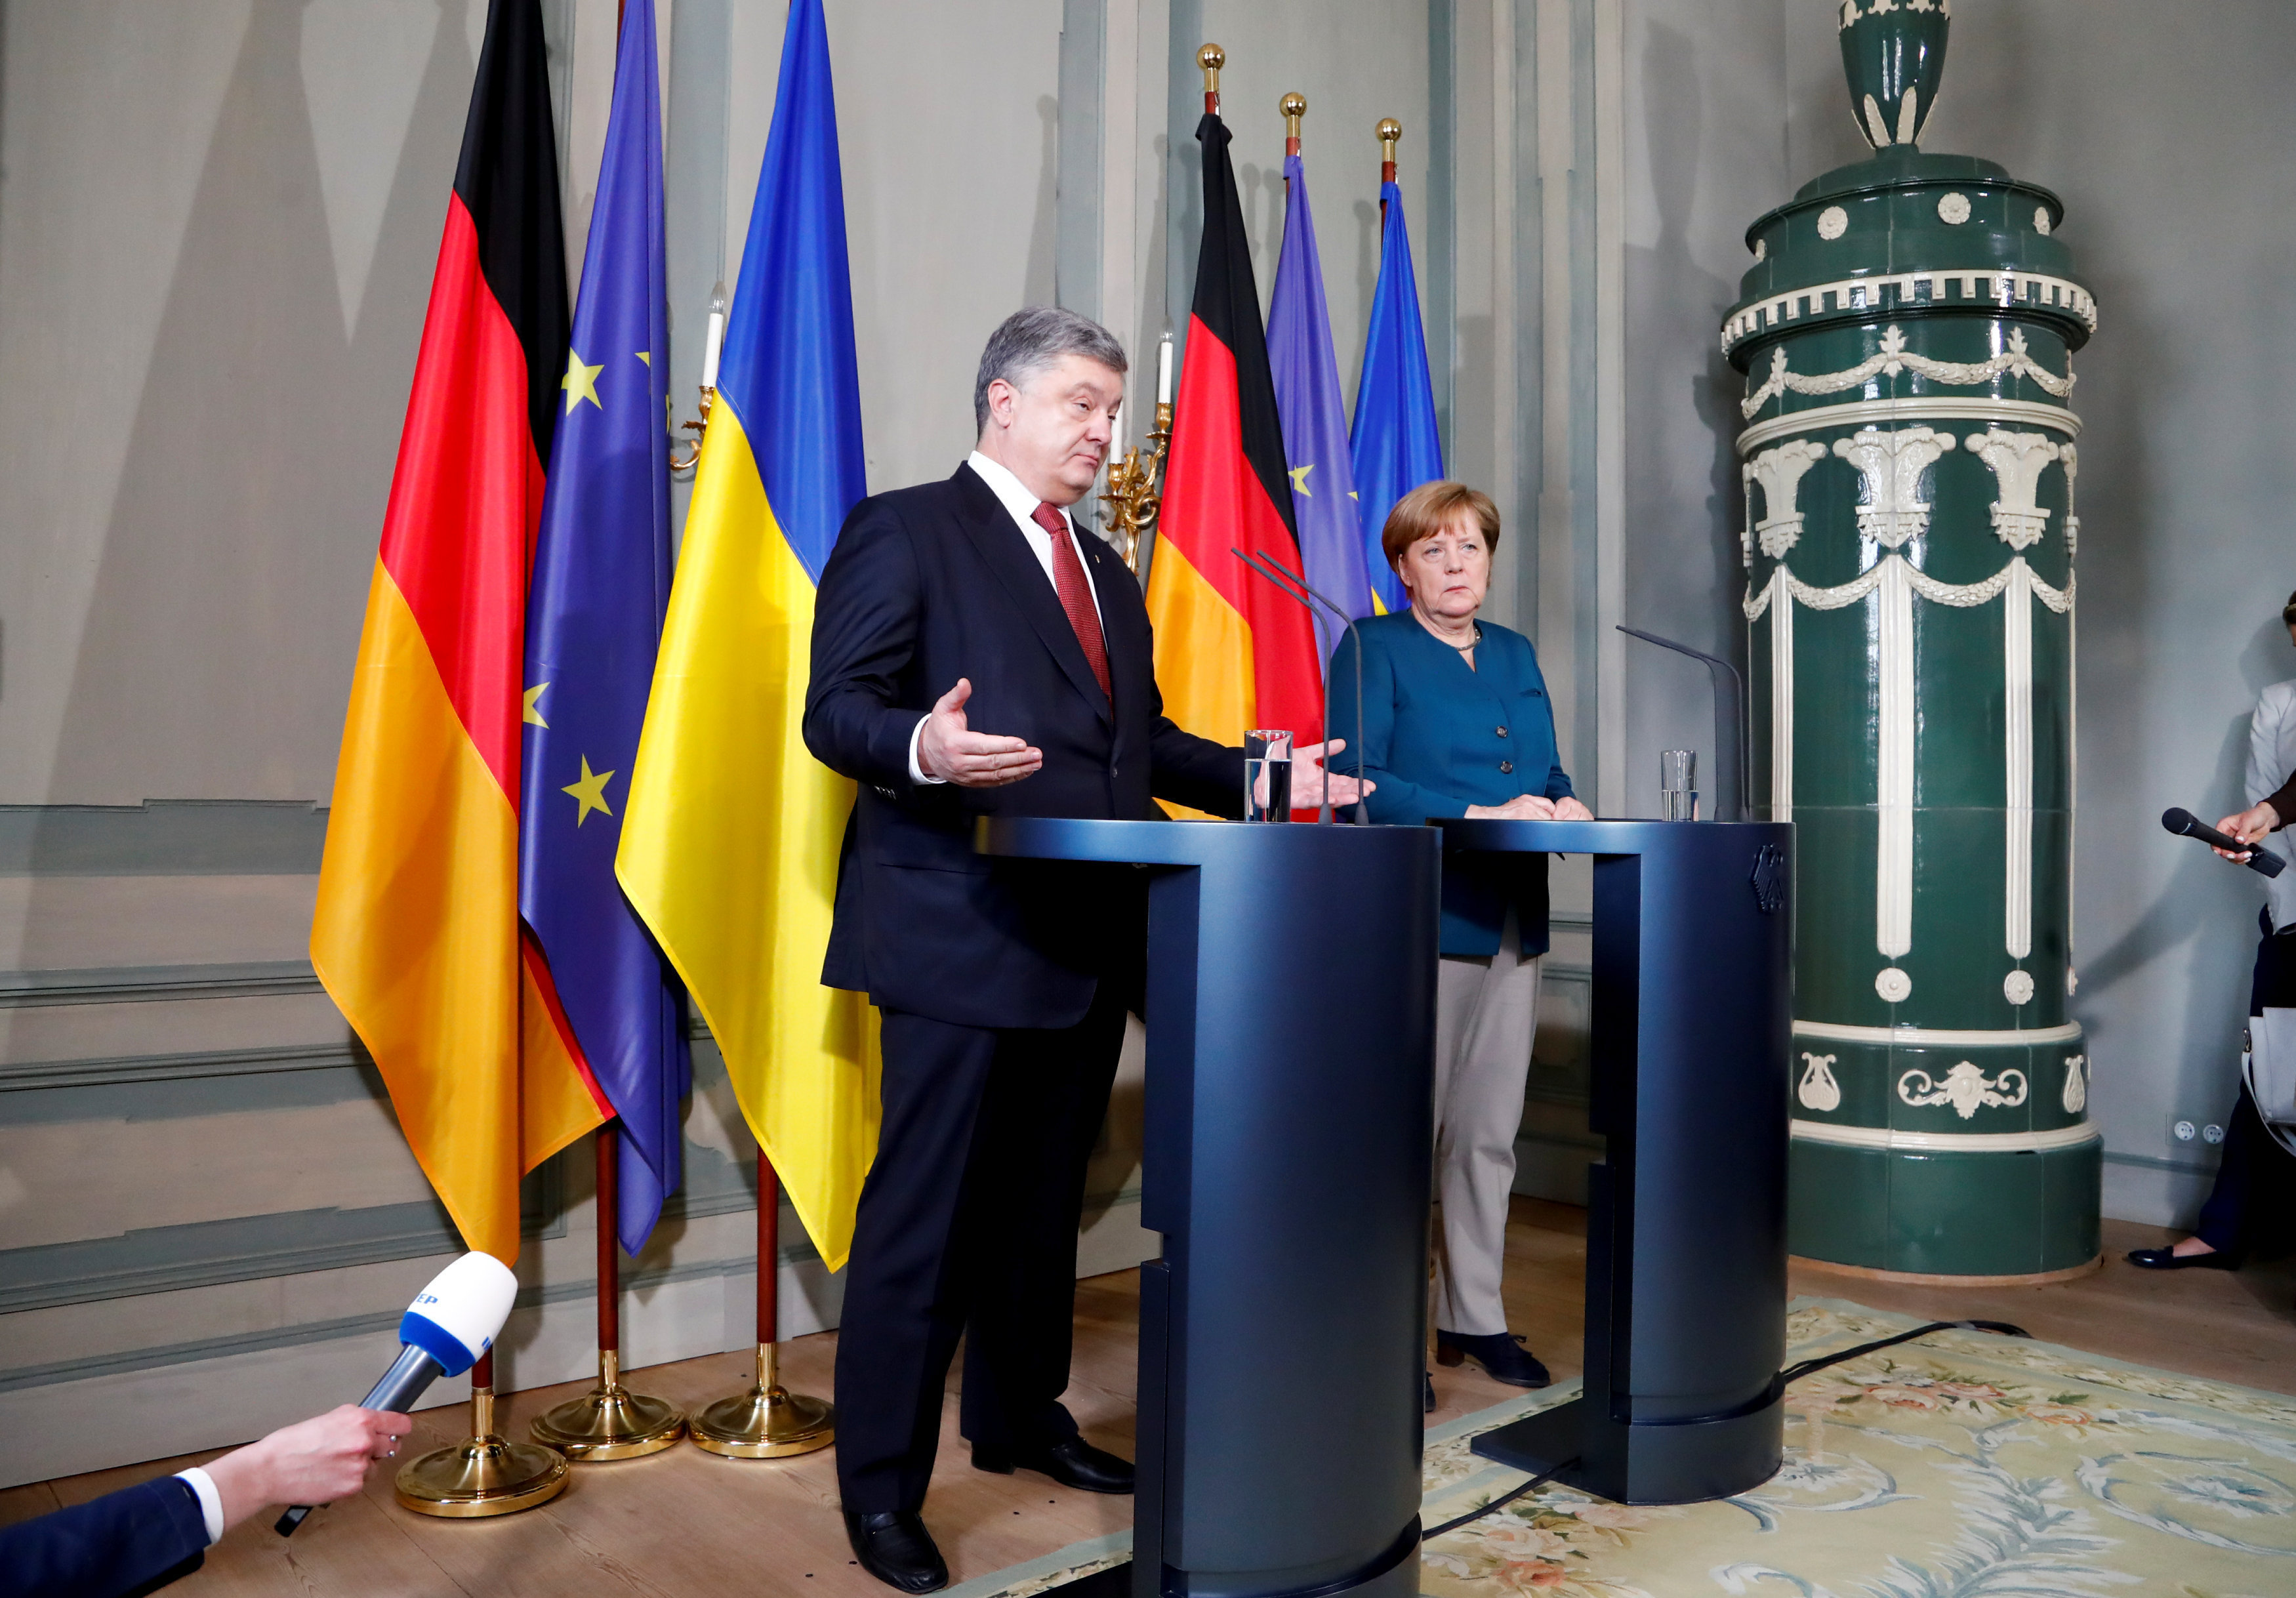 German Chancellor Angela Merkel and Ukrainian President Petro Poroshenko adress the media after a meeting at the German government guesthouse Meseberg Palace in Meseberg, Germany, May 20, 2017